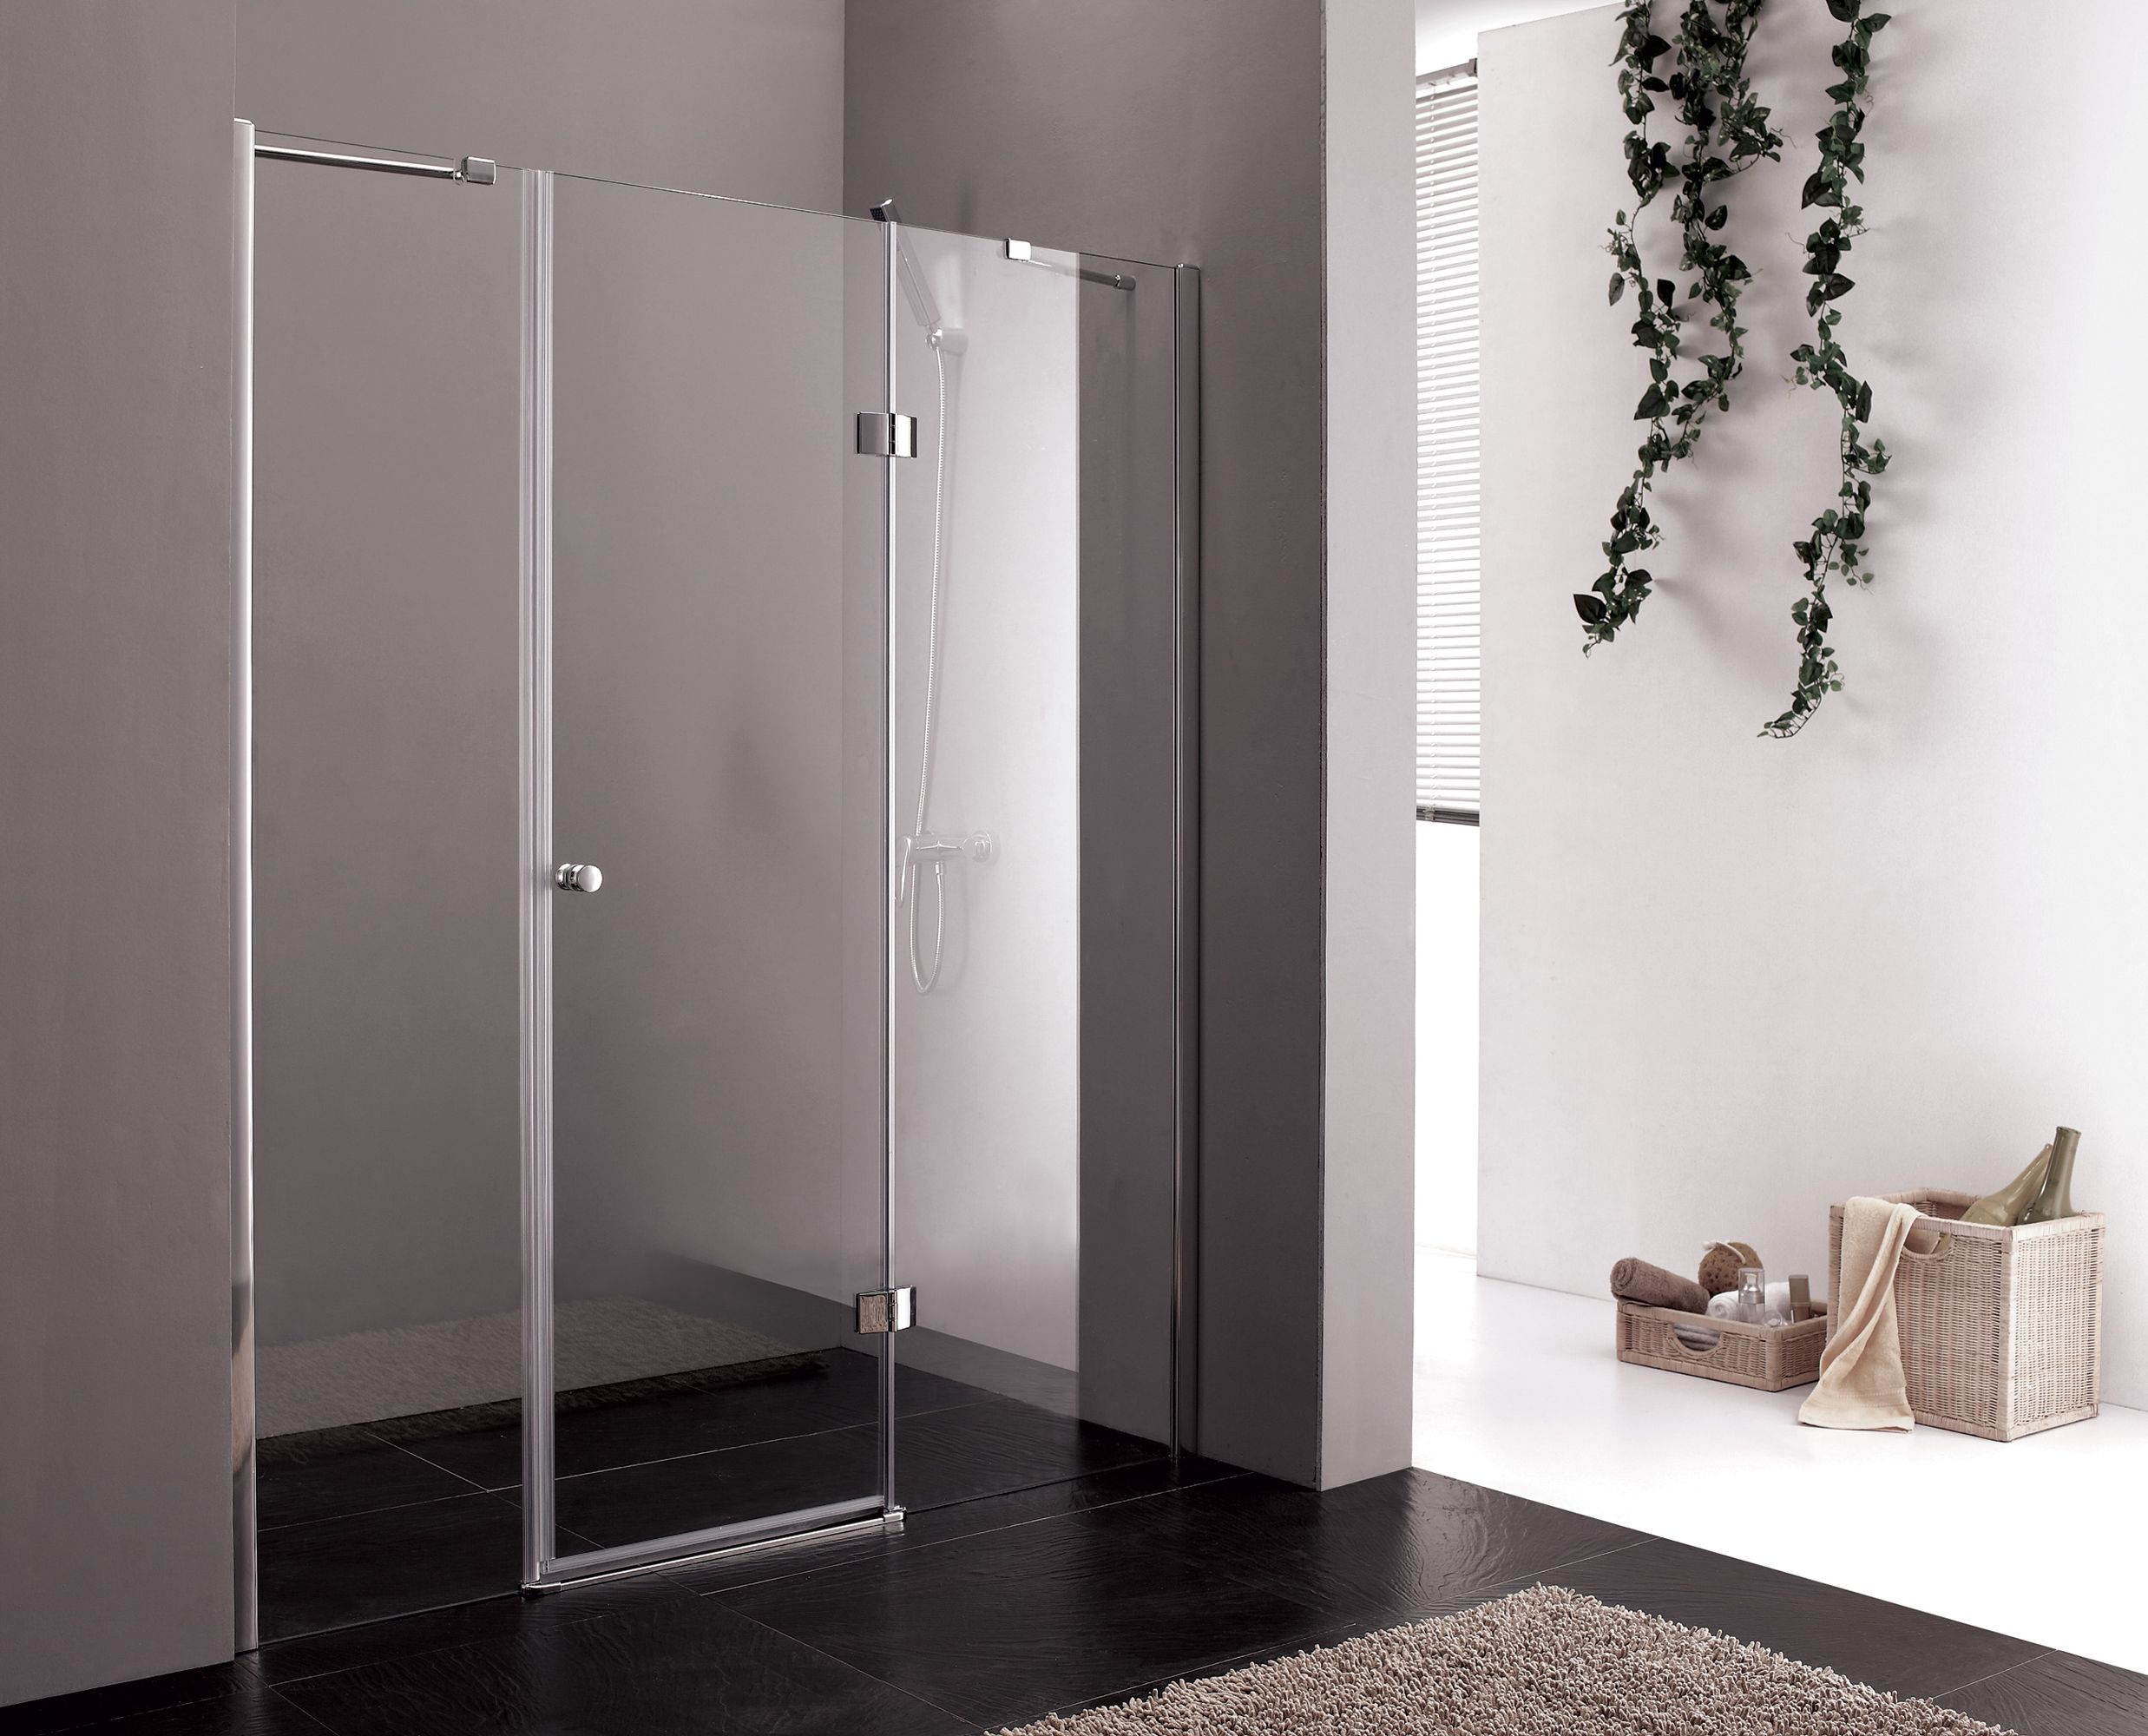 Transparent glass door shower